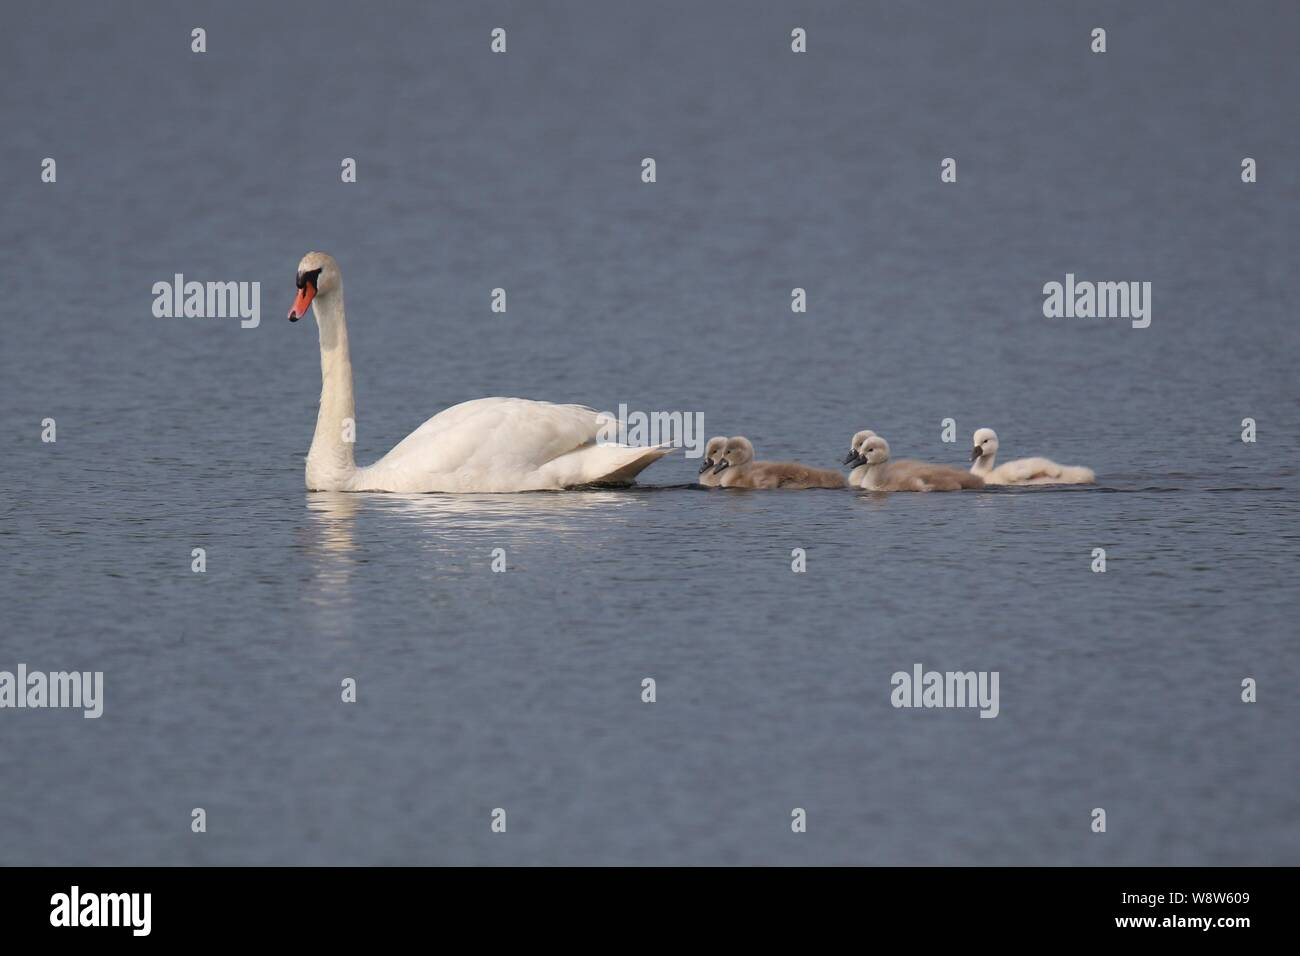 A mute swan Cygnus olor with a family of cygnets swimming behind on blue water Stock Photo